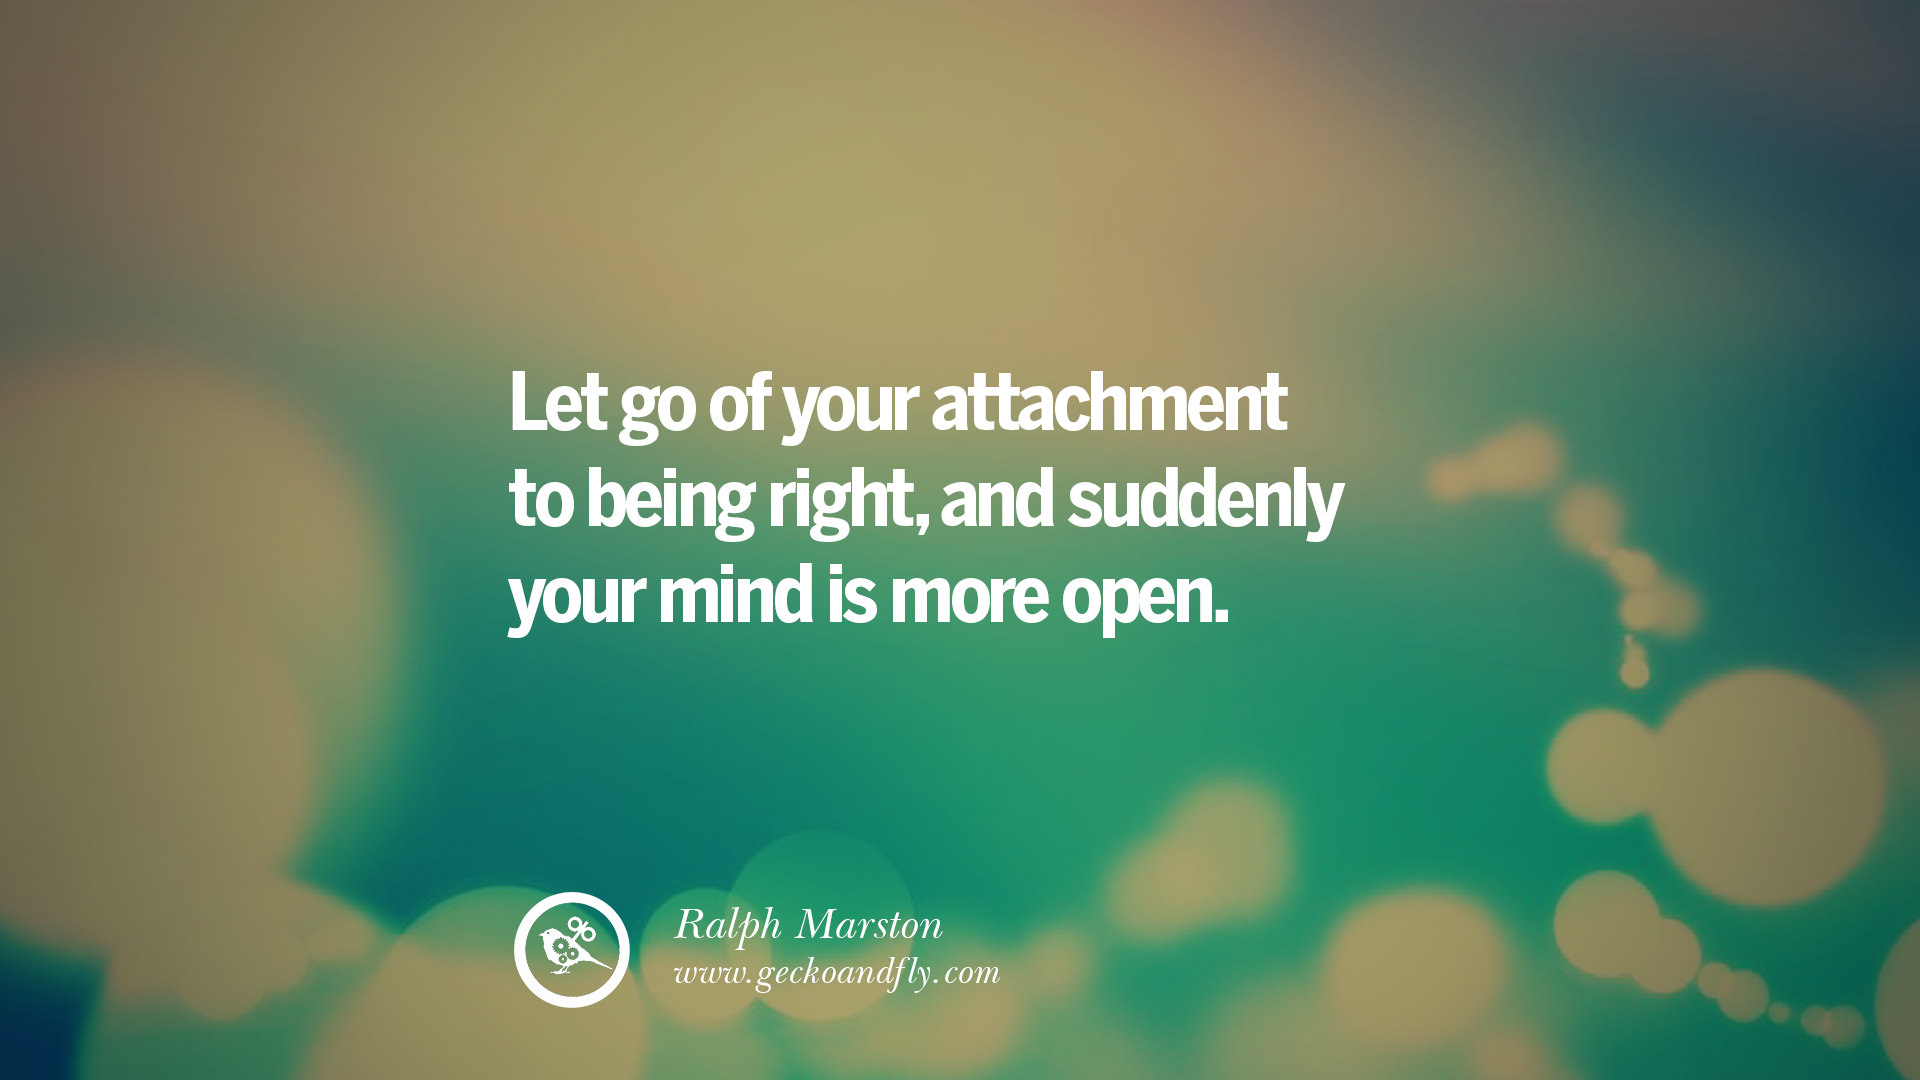 let go of your attachment to being right and suddenly your mind is more open - Letting Go Quotes